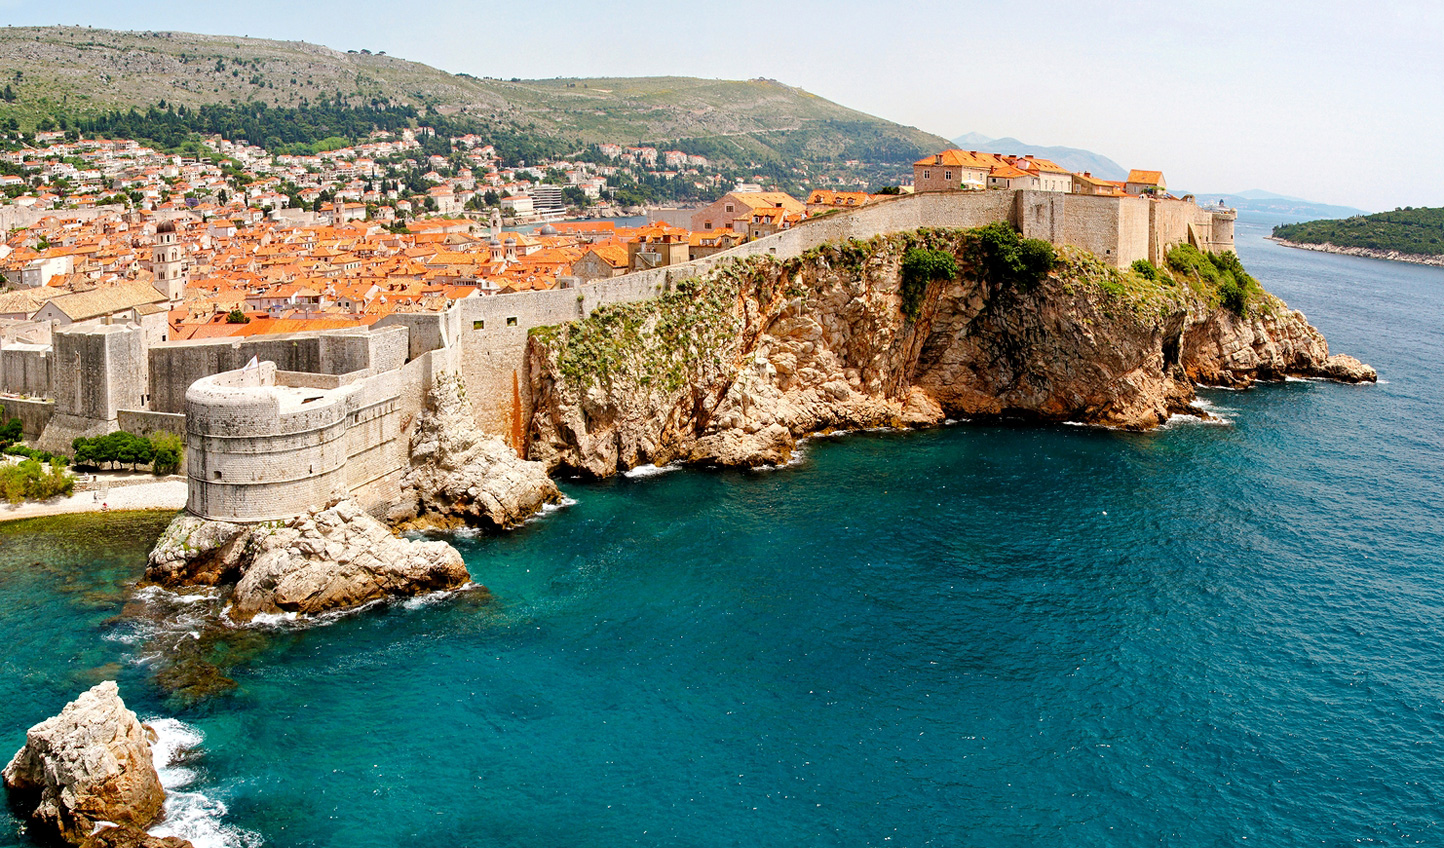 Walk the city walls of Dubrovnik